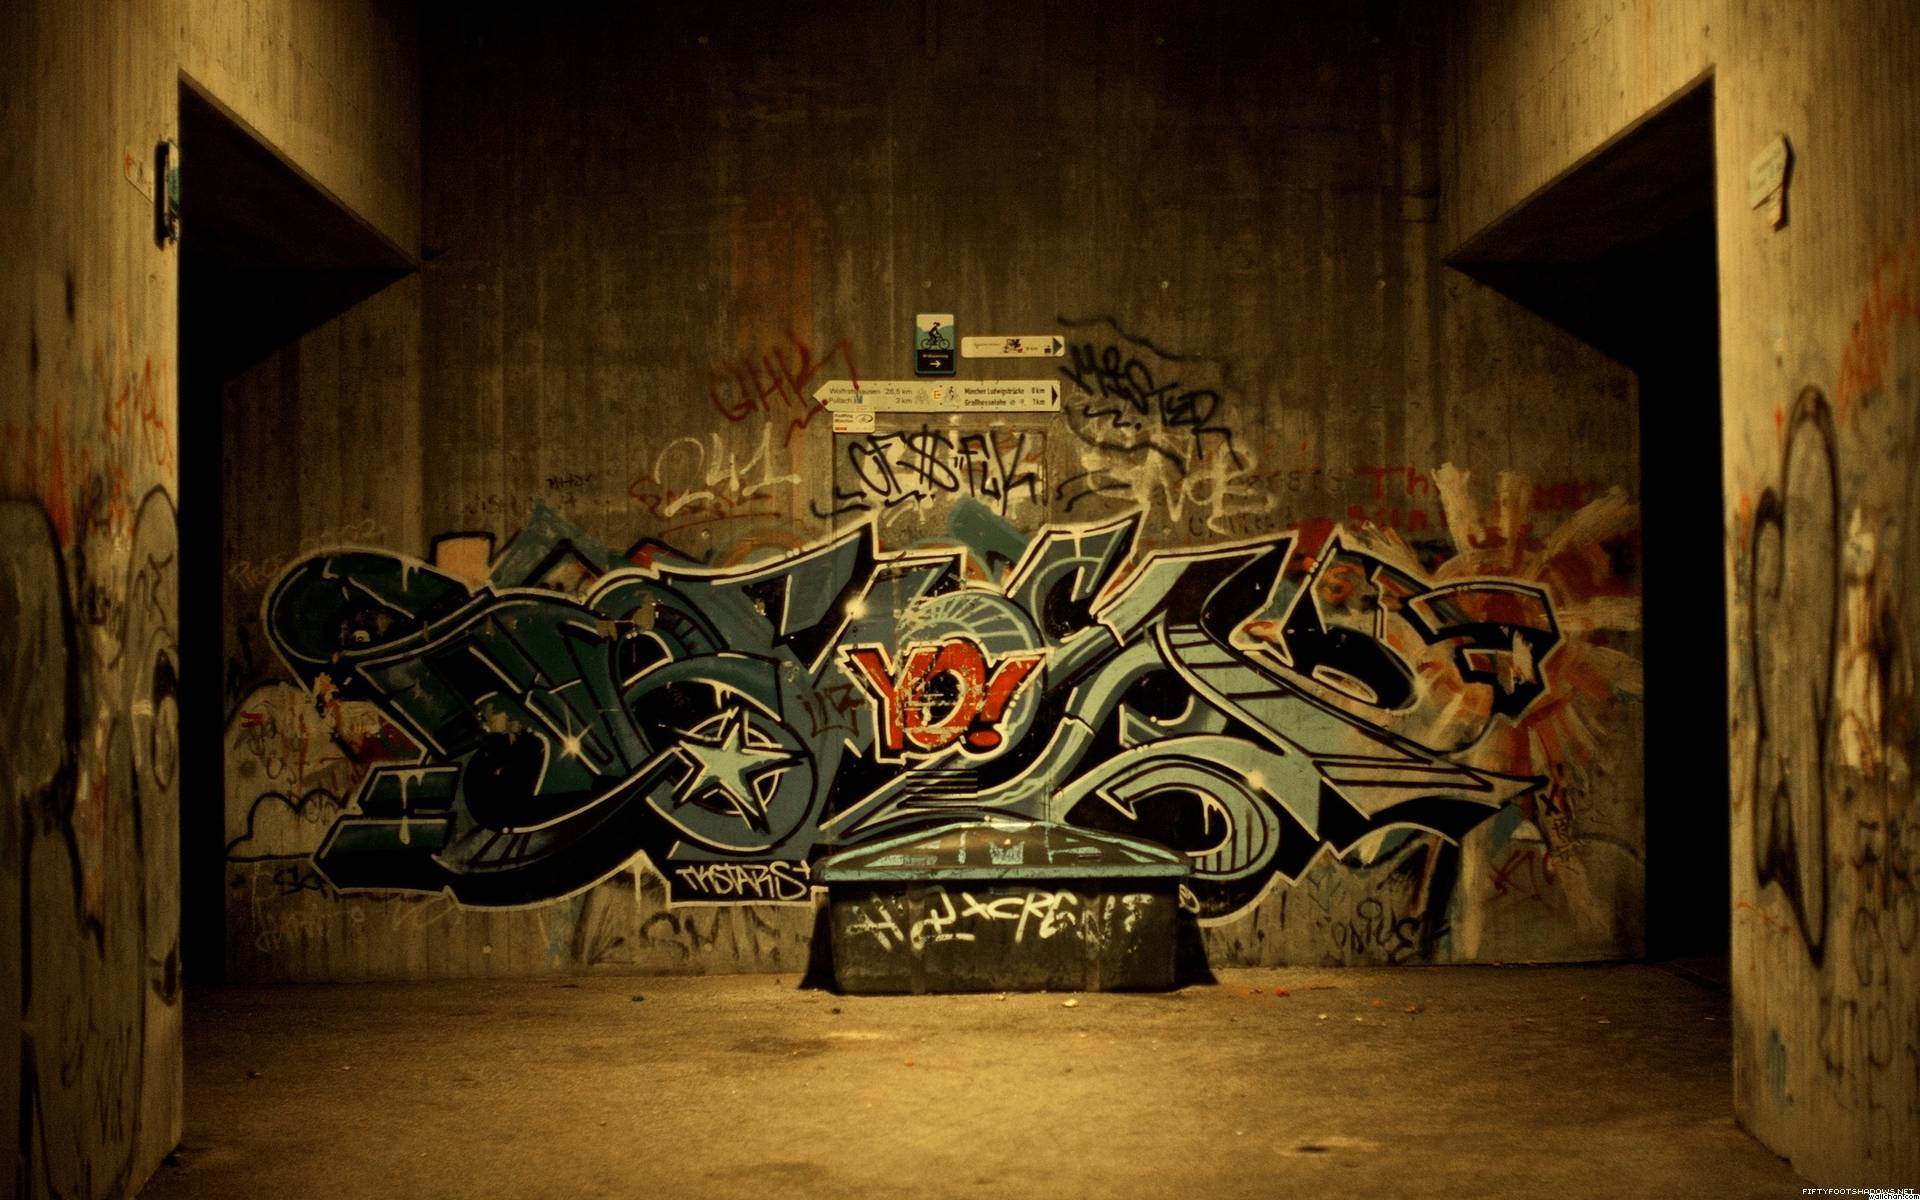 Hip hop wallpapers wallpaper cave for Graffiti wallpaper